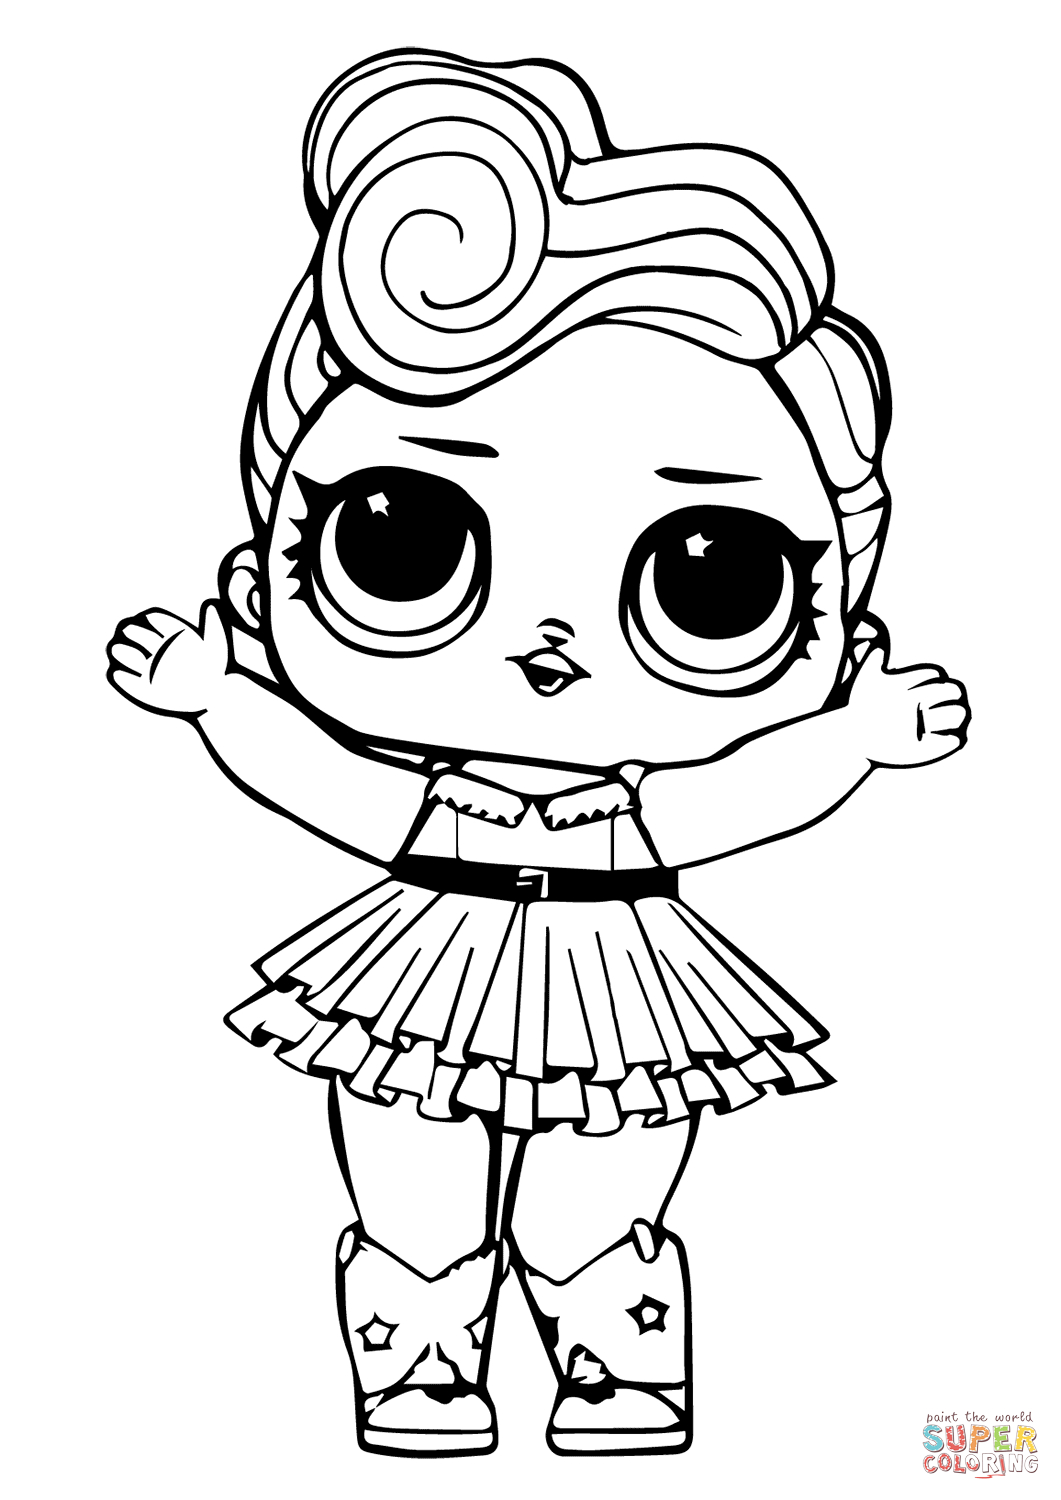 Lol Doll Luxe Coloring Page | Free Printable Coloring Pages | Lol - Free Printable Coloring Pages For Girls